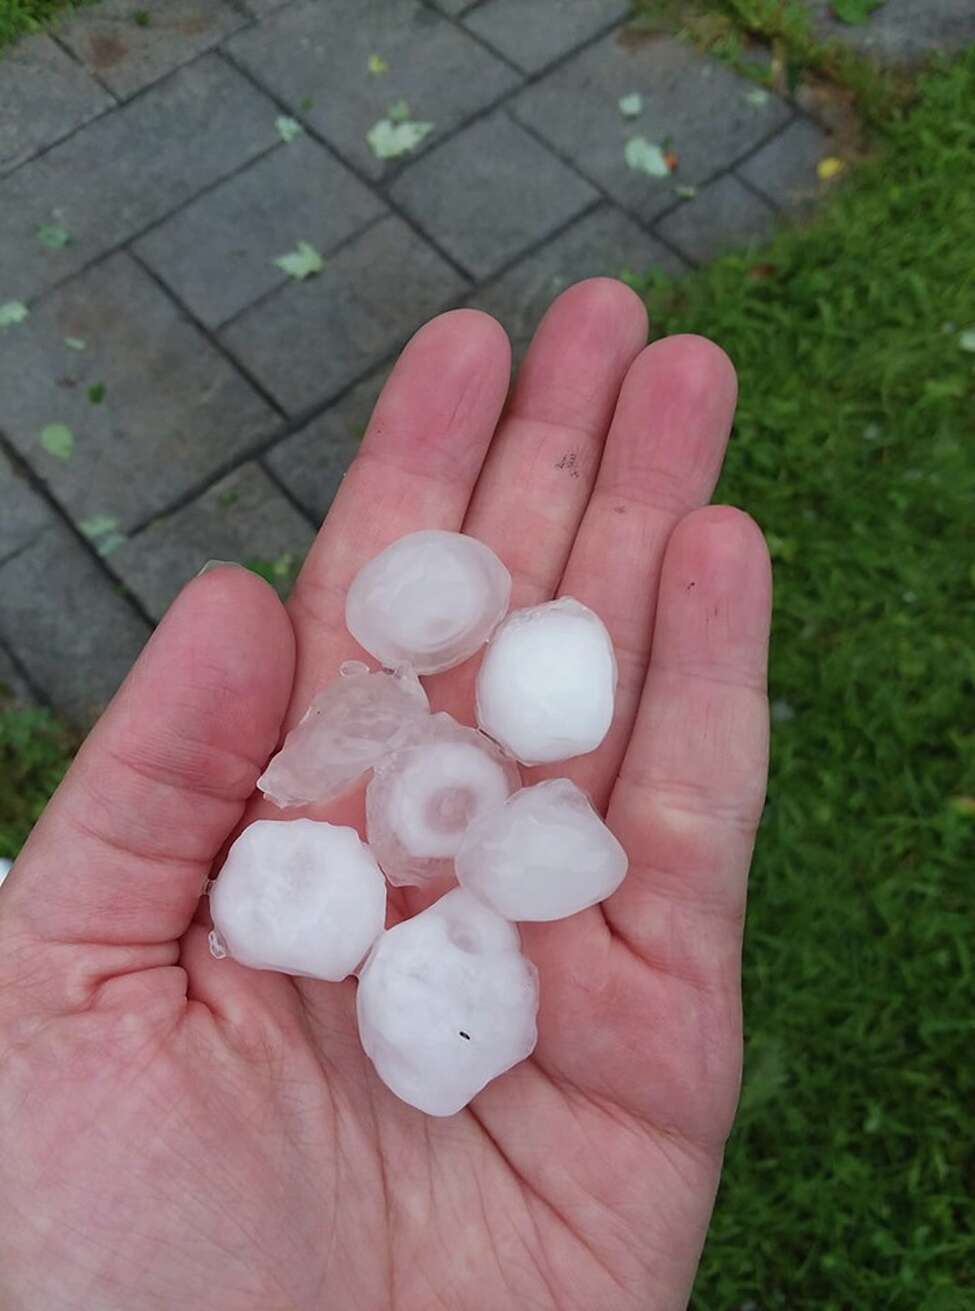 Brieanne Jones shared this image of hail from an August 2019 severe weather event.